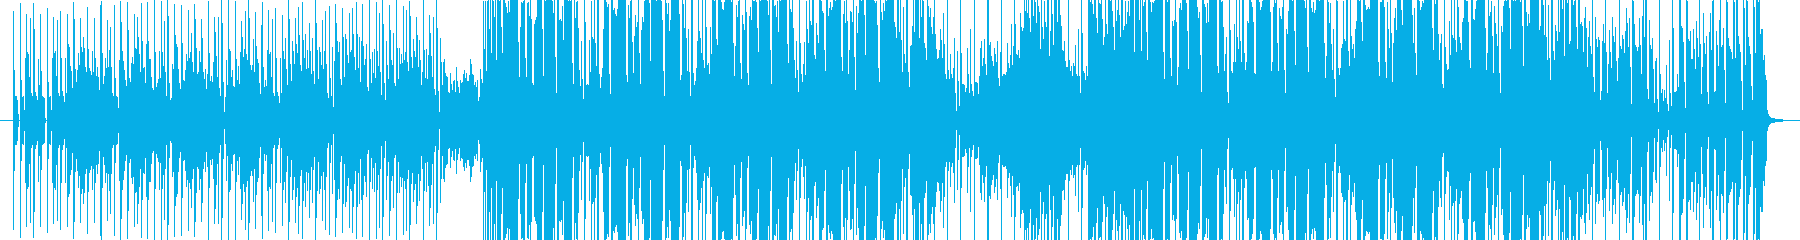 Healthy and nimble pops's reproduced waveform